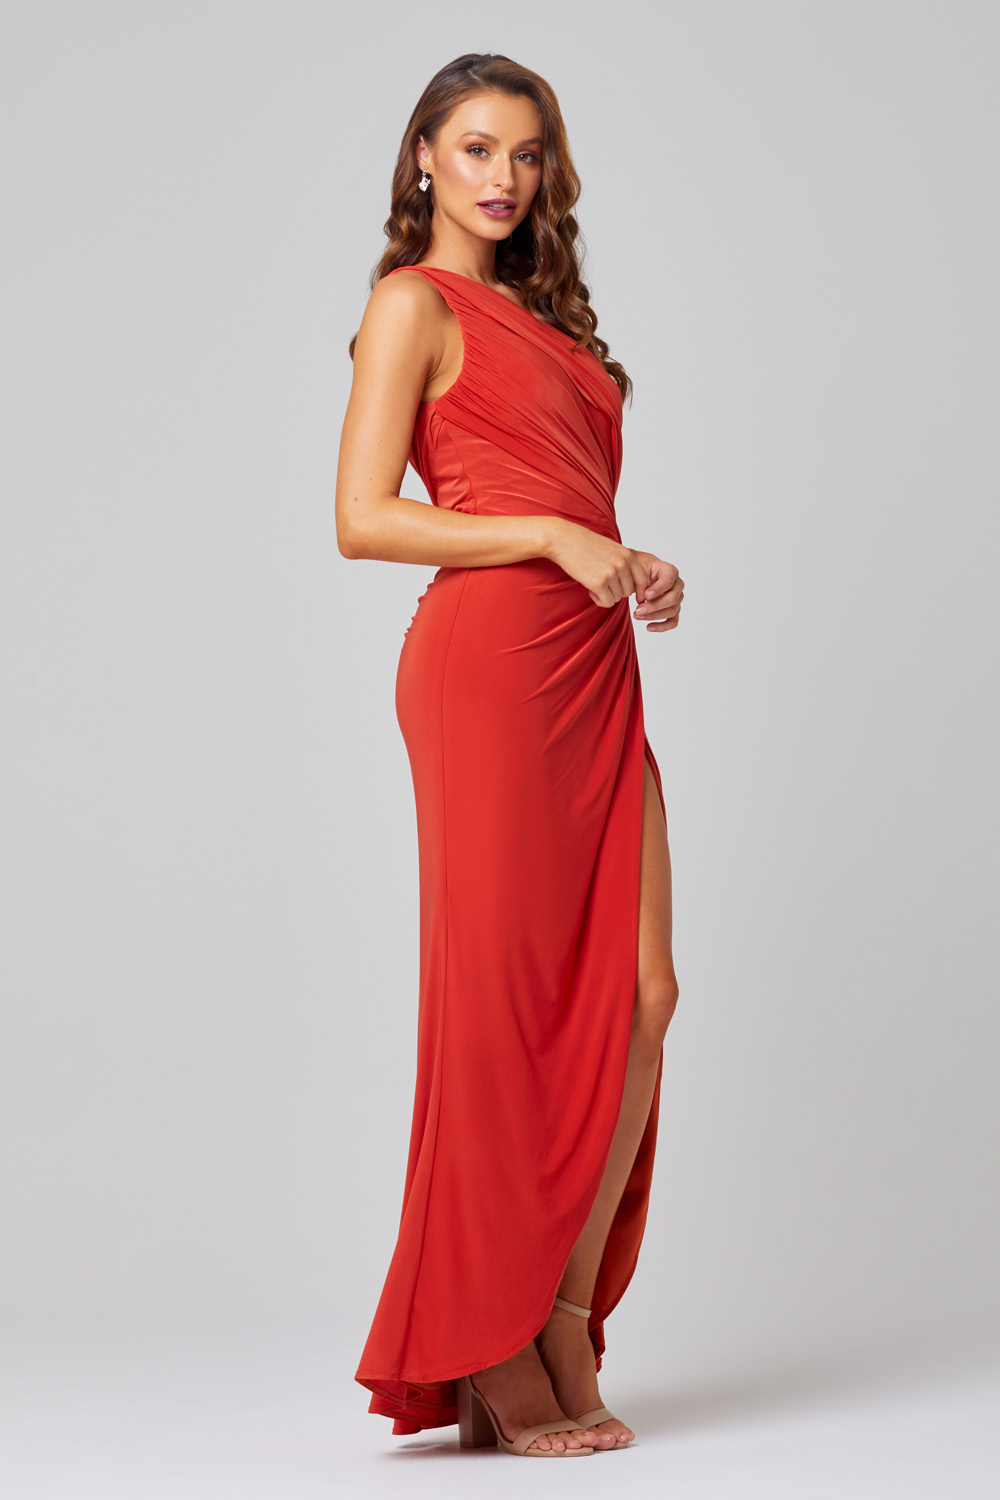 Polly One Shoulder Bridesmaid Dress – TO846 Side